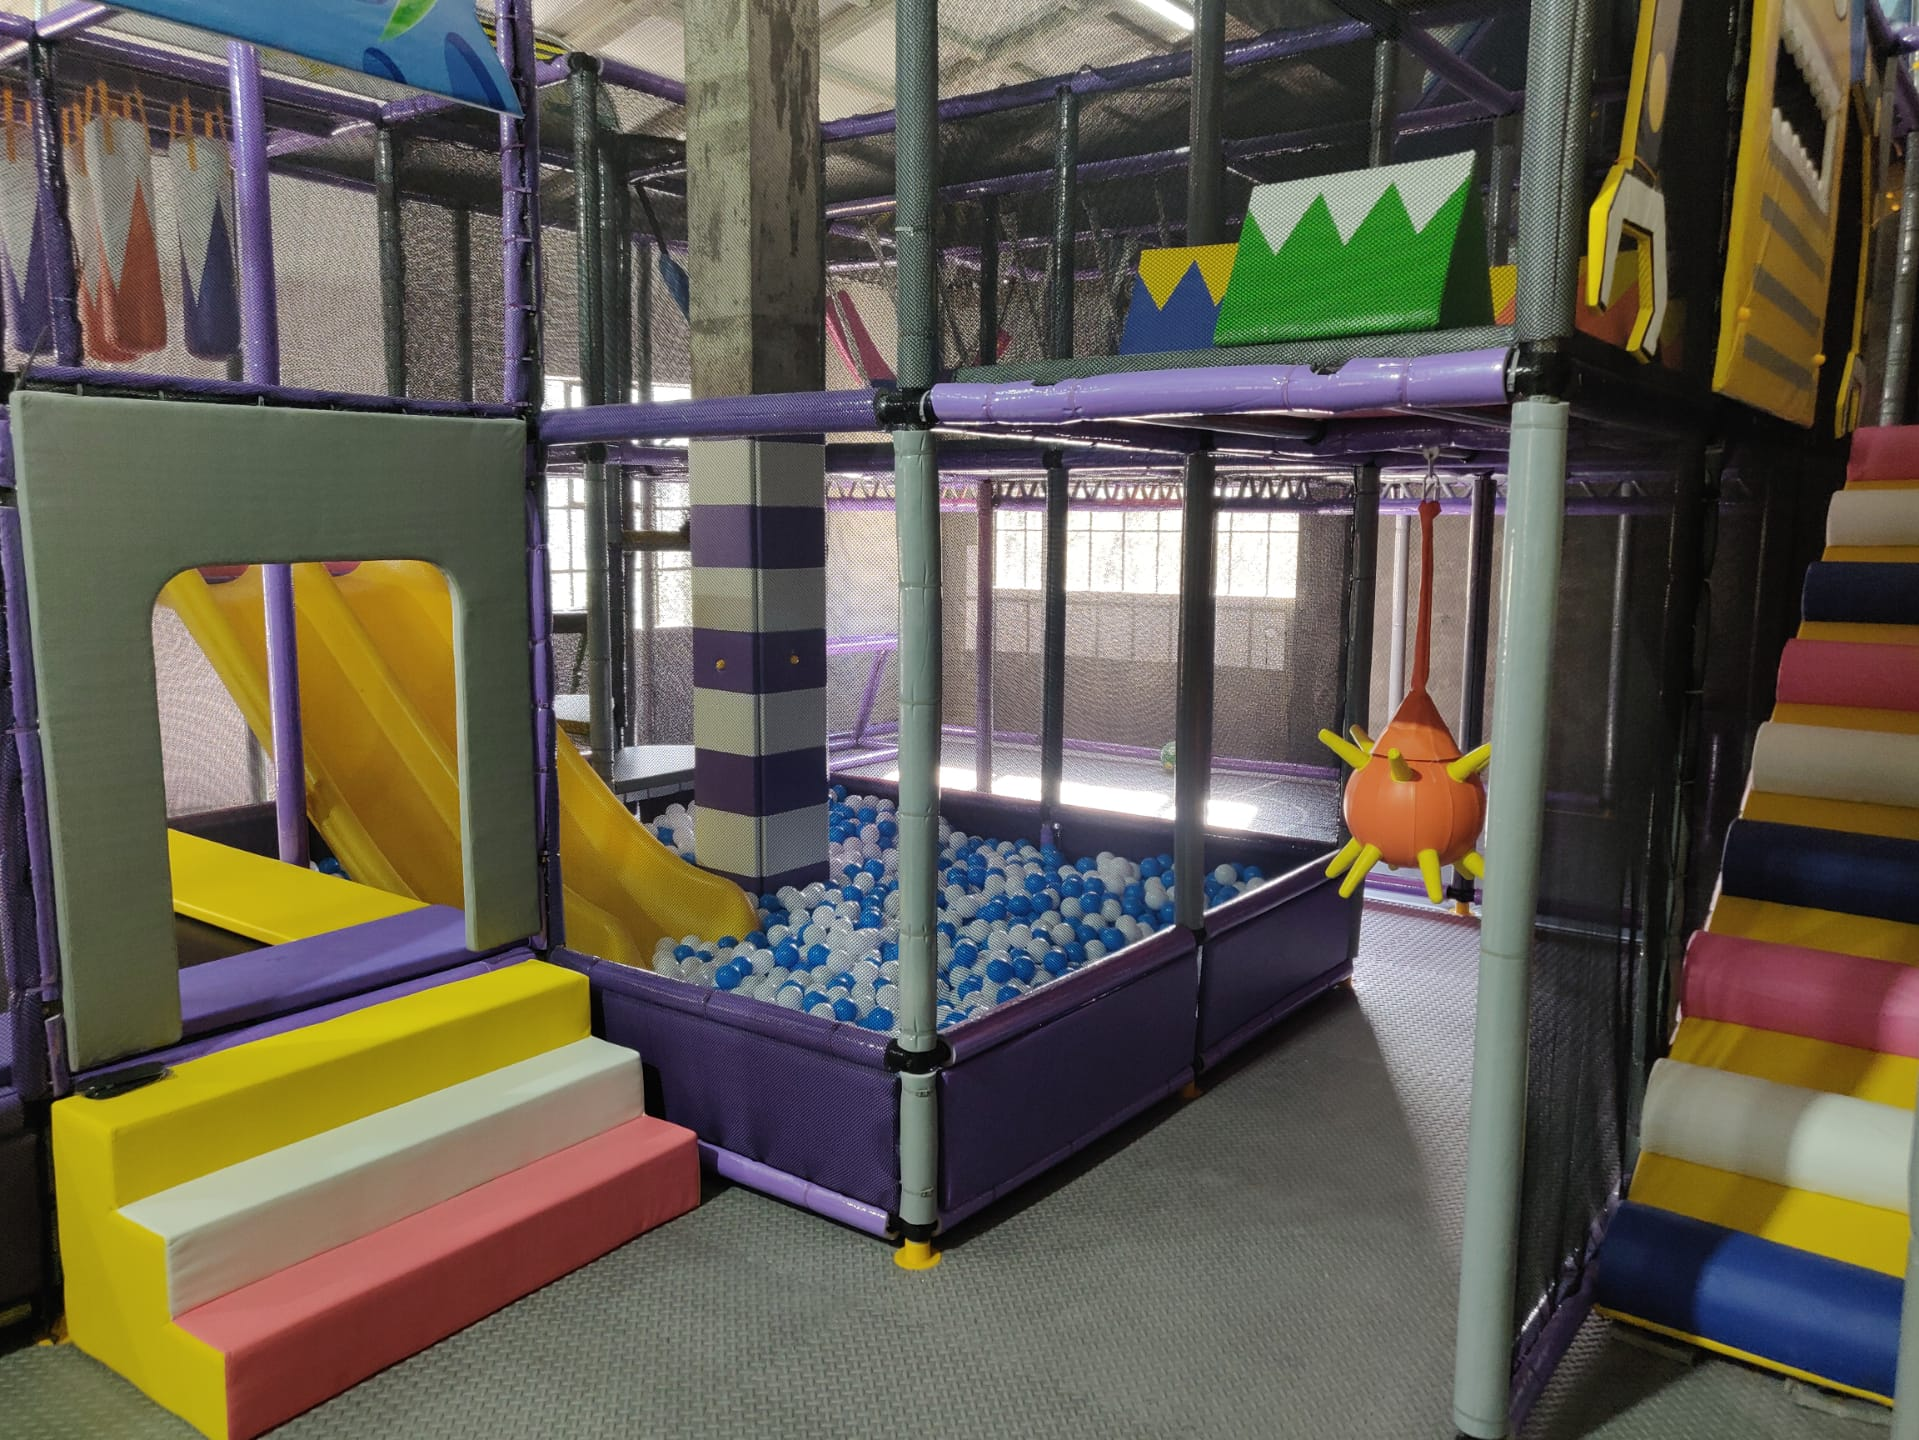 TUV ASTM CE Approved Space Theme Indoor Playground Equipment Prices, Toddler Indoor Playgrounds